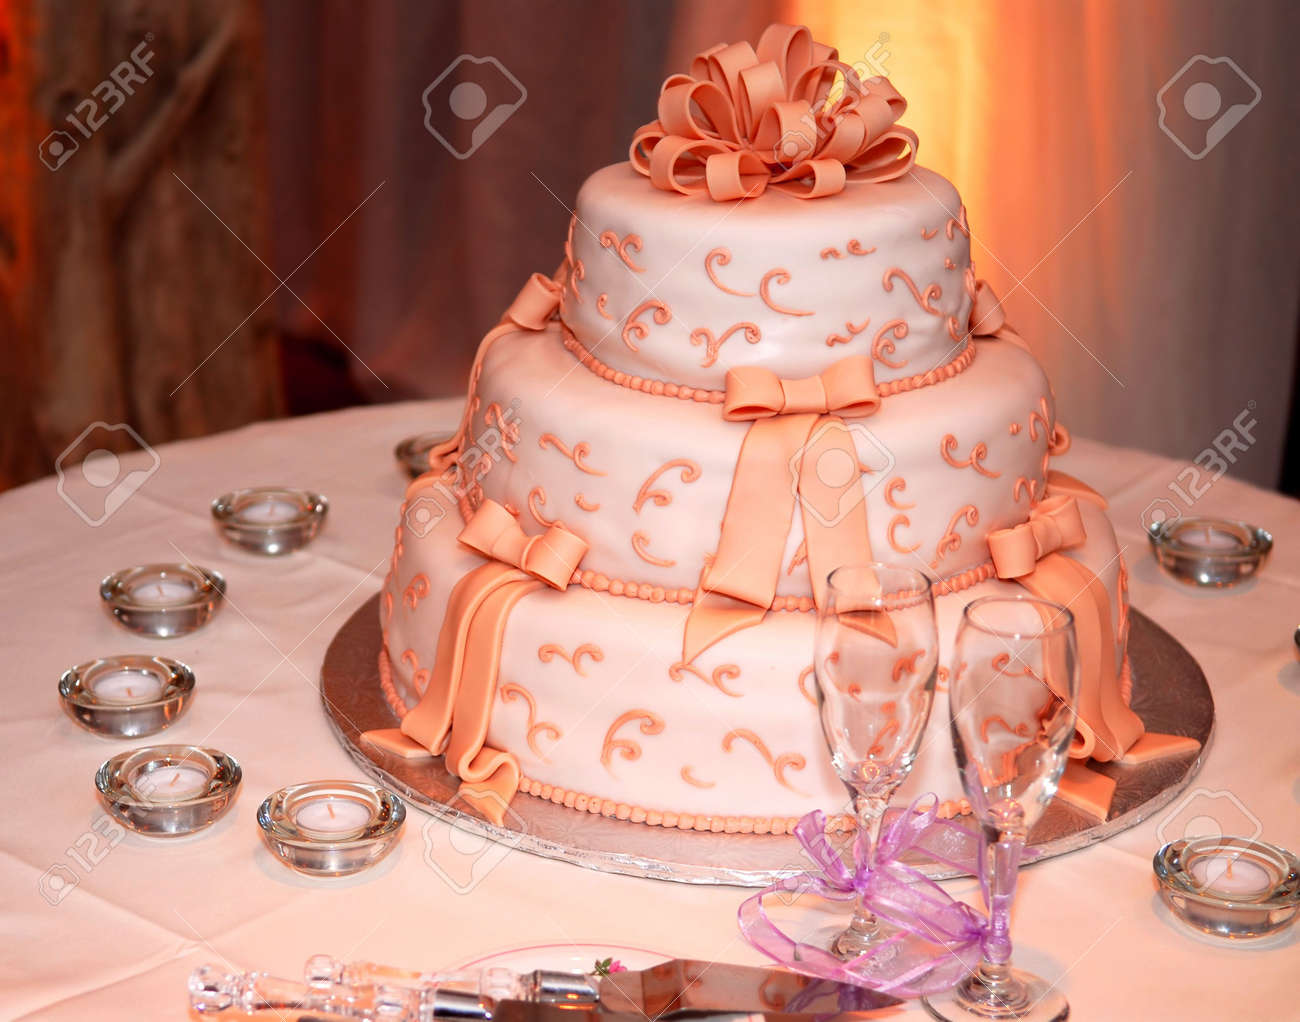 Three Tiered Wedding Cake And Champagne Glasses On A Table Stock ...